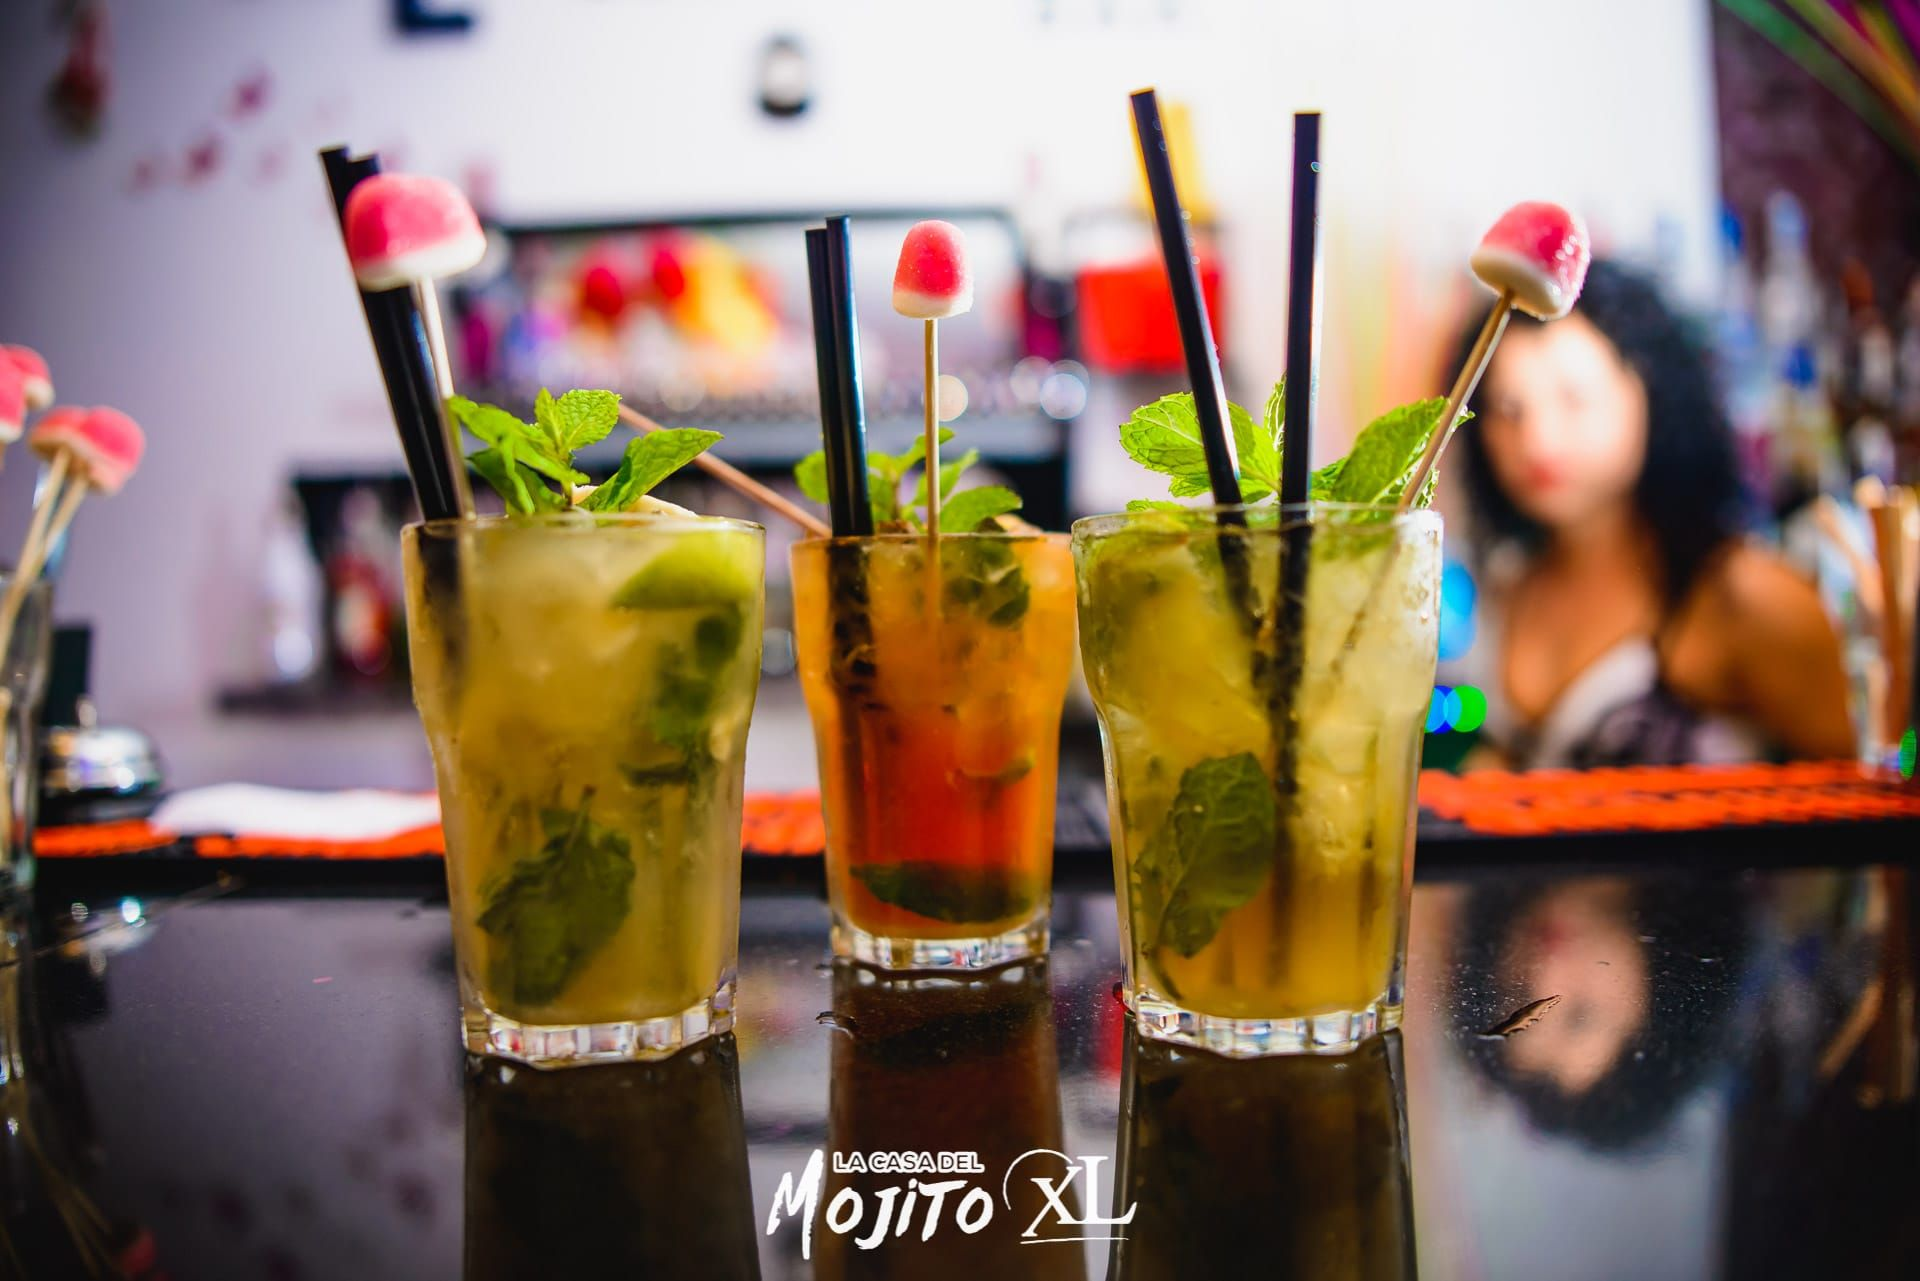 More than 50 kinds of mojitos